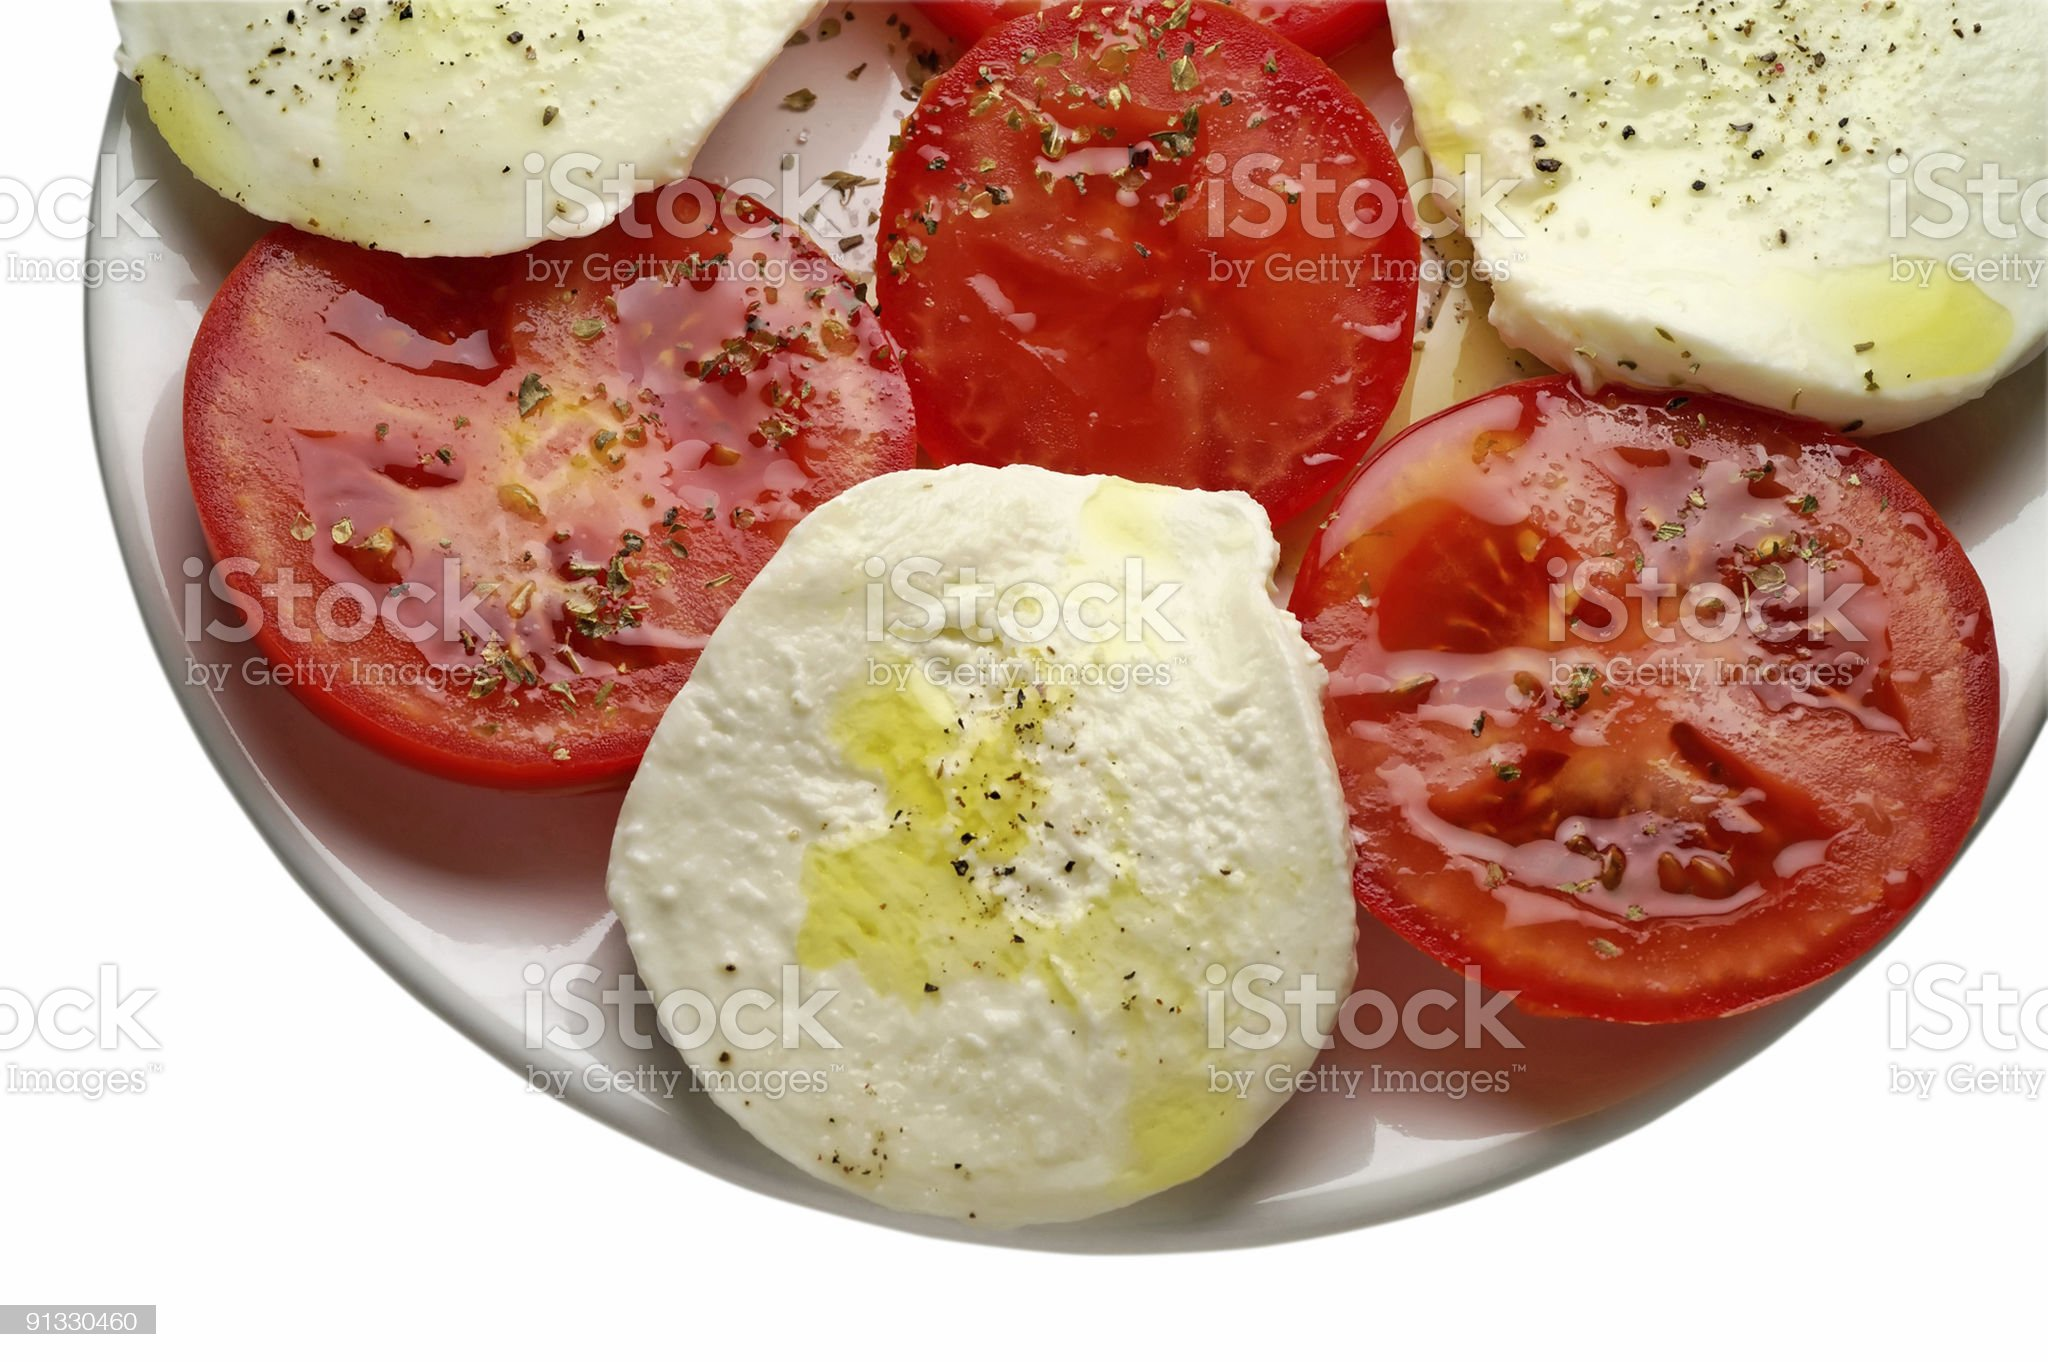 Caprese salad with clipping path royalty-free stock photo